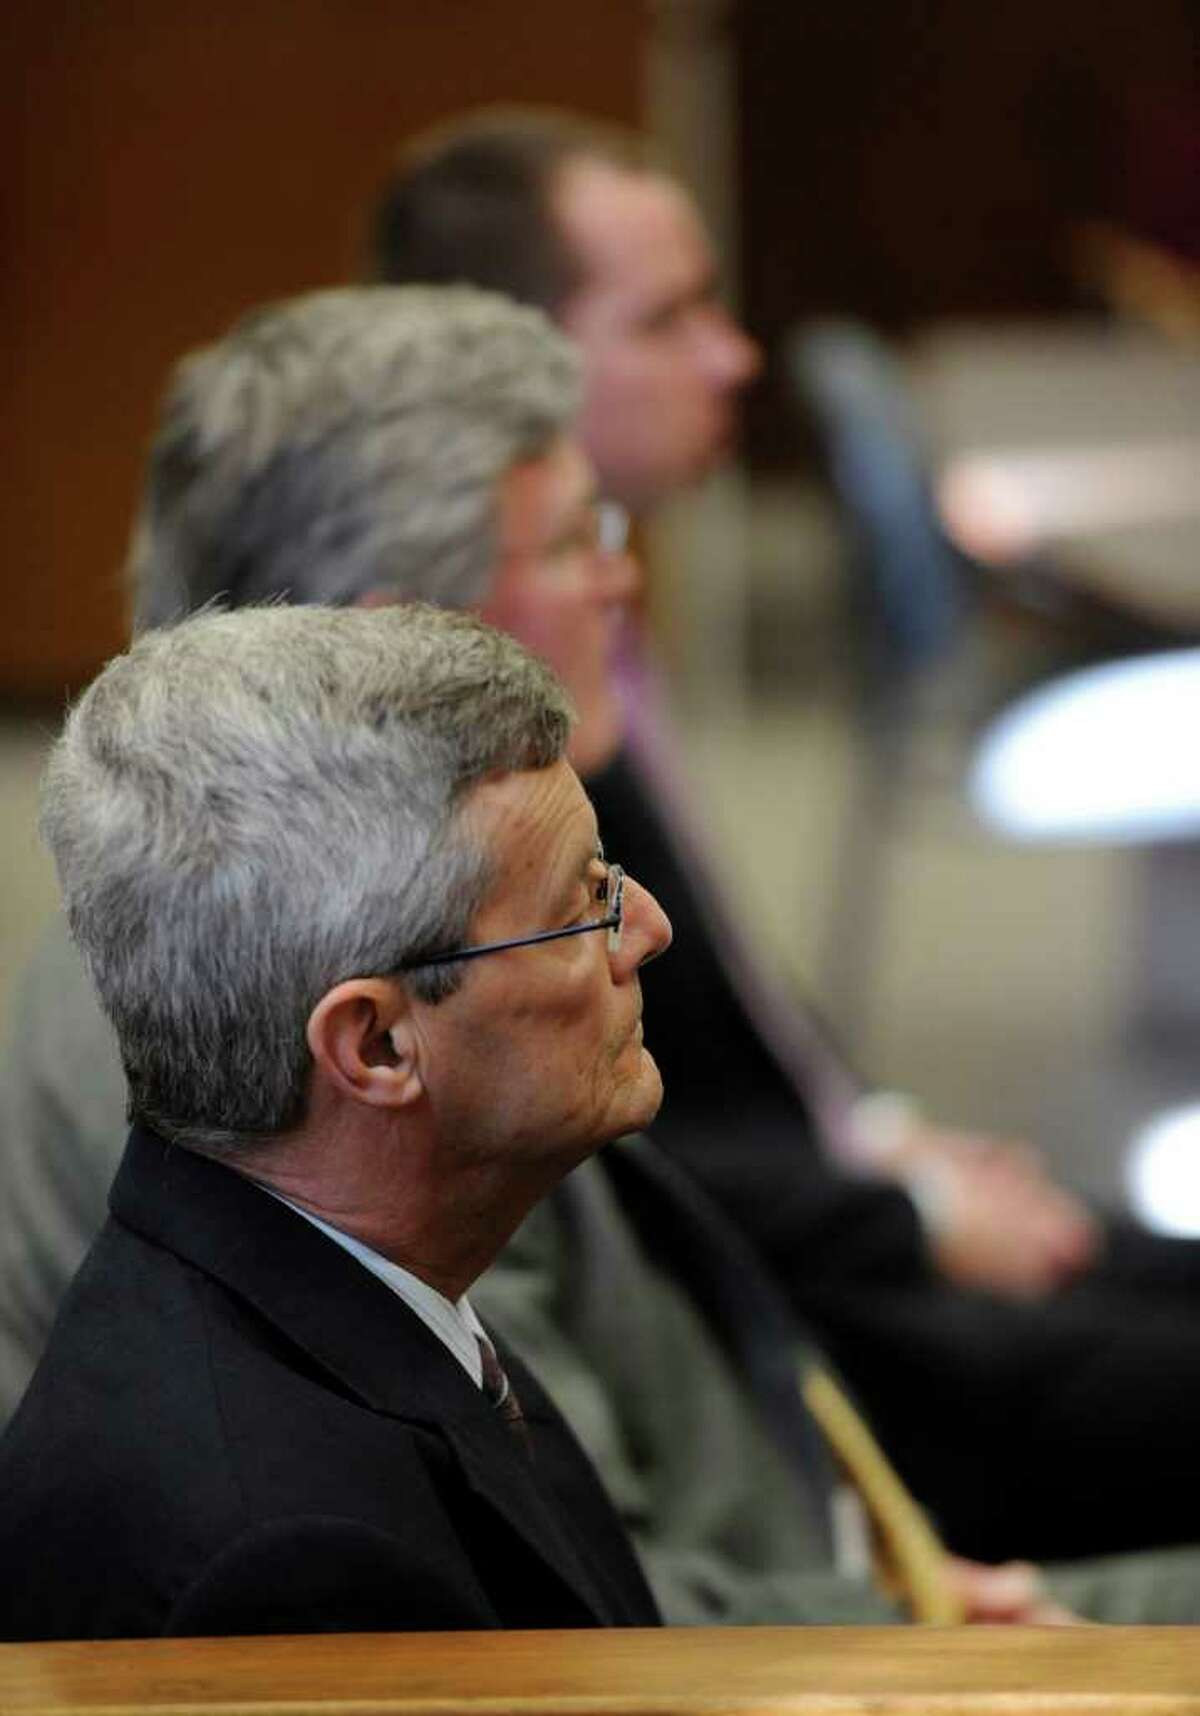 Former priest Gary Mercure listens to testimony during his trial for sexually abusing two boys in the 1980s. (Skip Dickstein / Times Union)